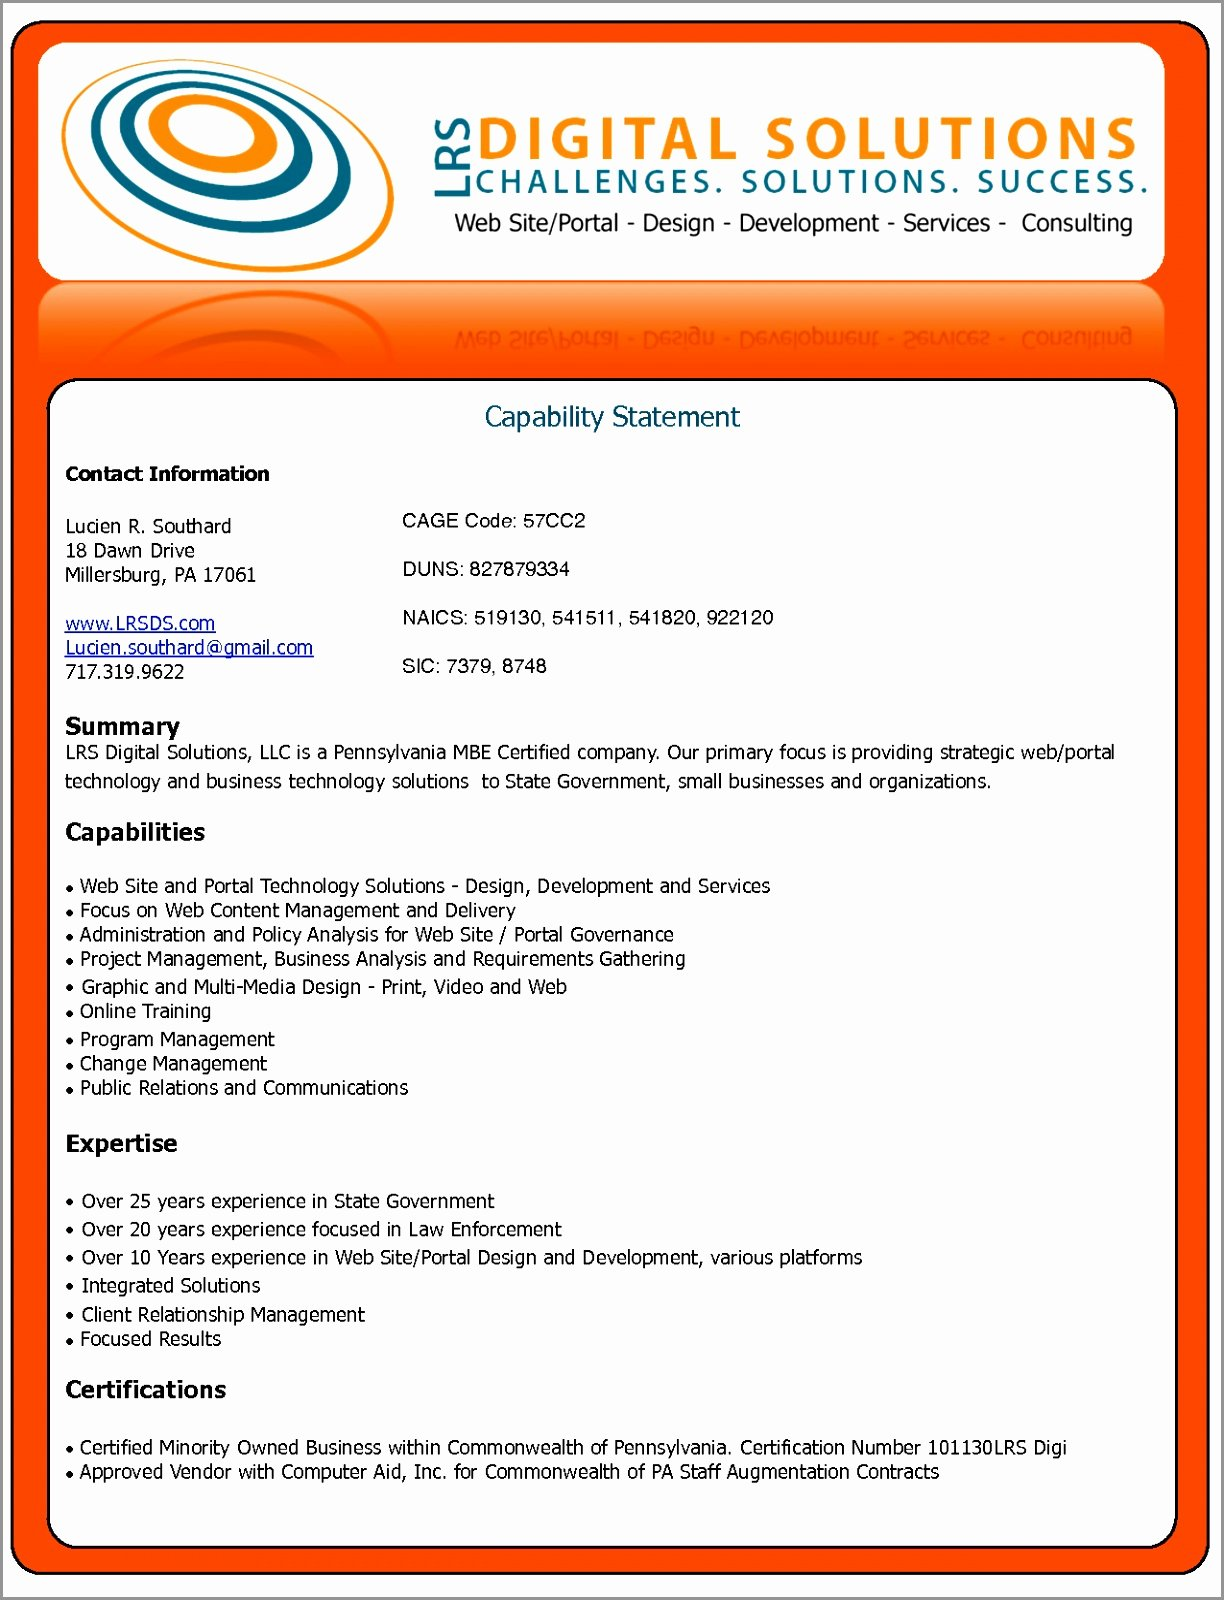 Free Capability Statement Template Word Beautiful Sample Capability Statement Templates – 15 Free Documents Example Capability Statement Template